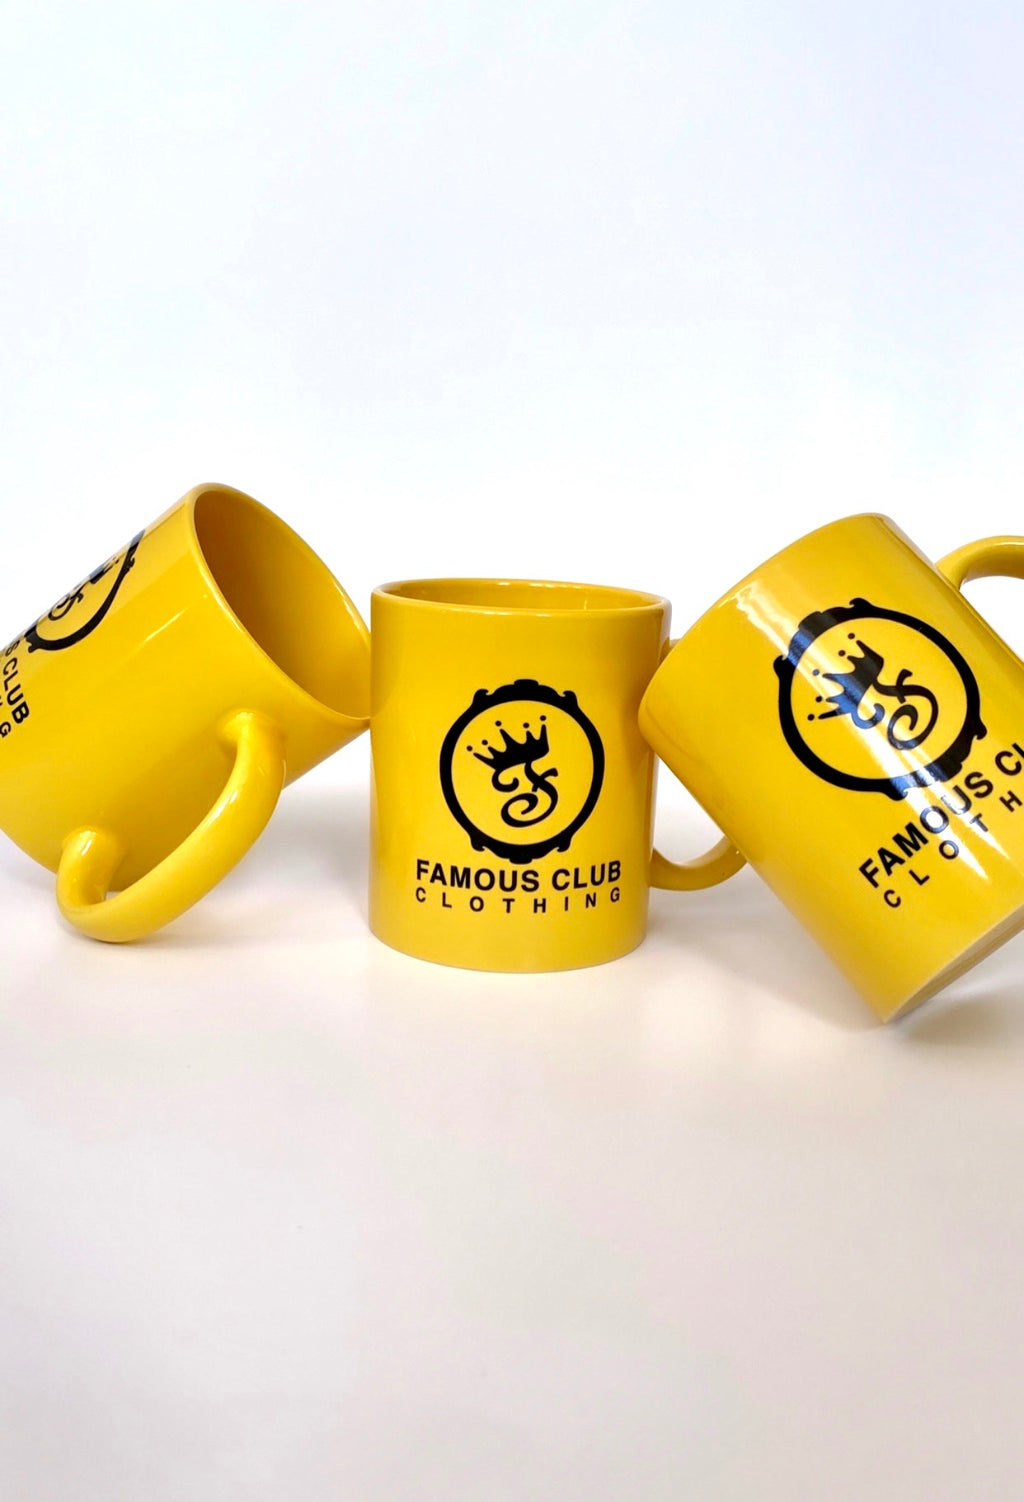 FAMOUS CLUB COFFEE MUG - Famous Club Clothing